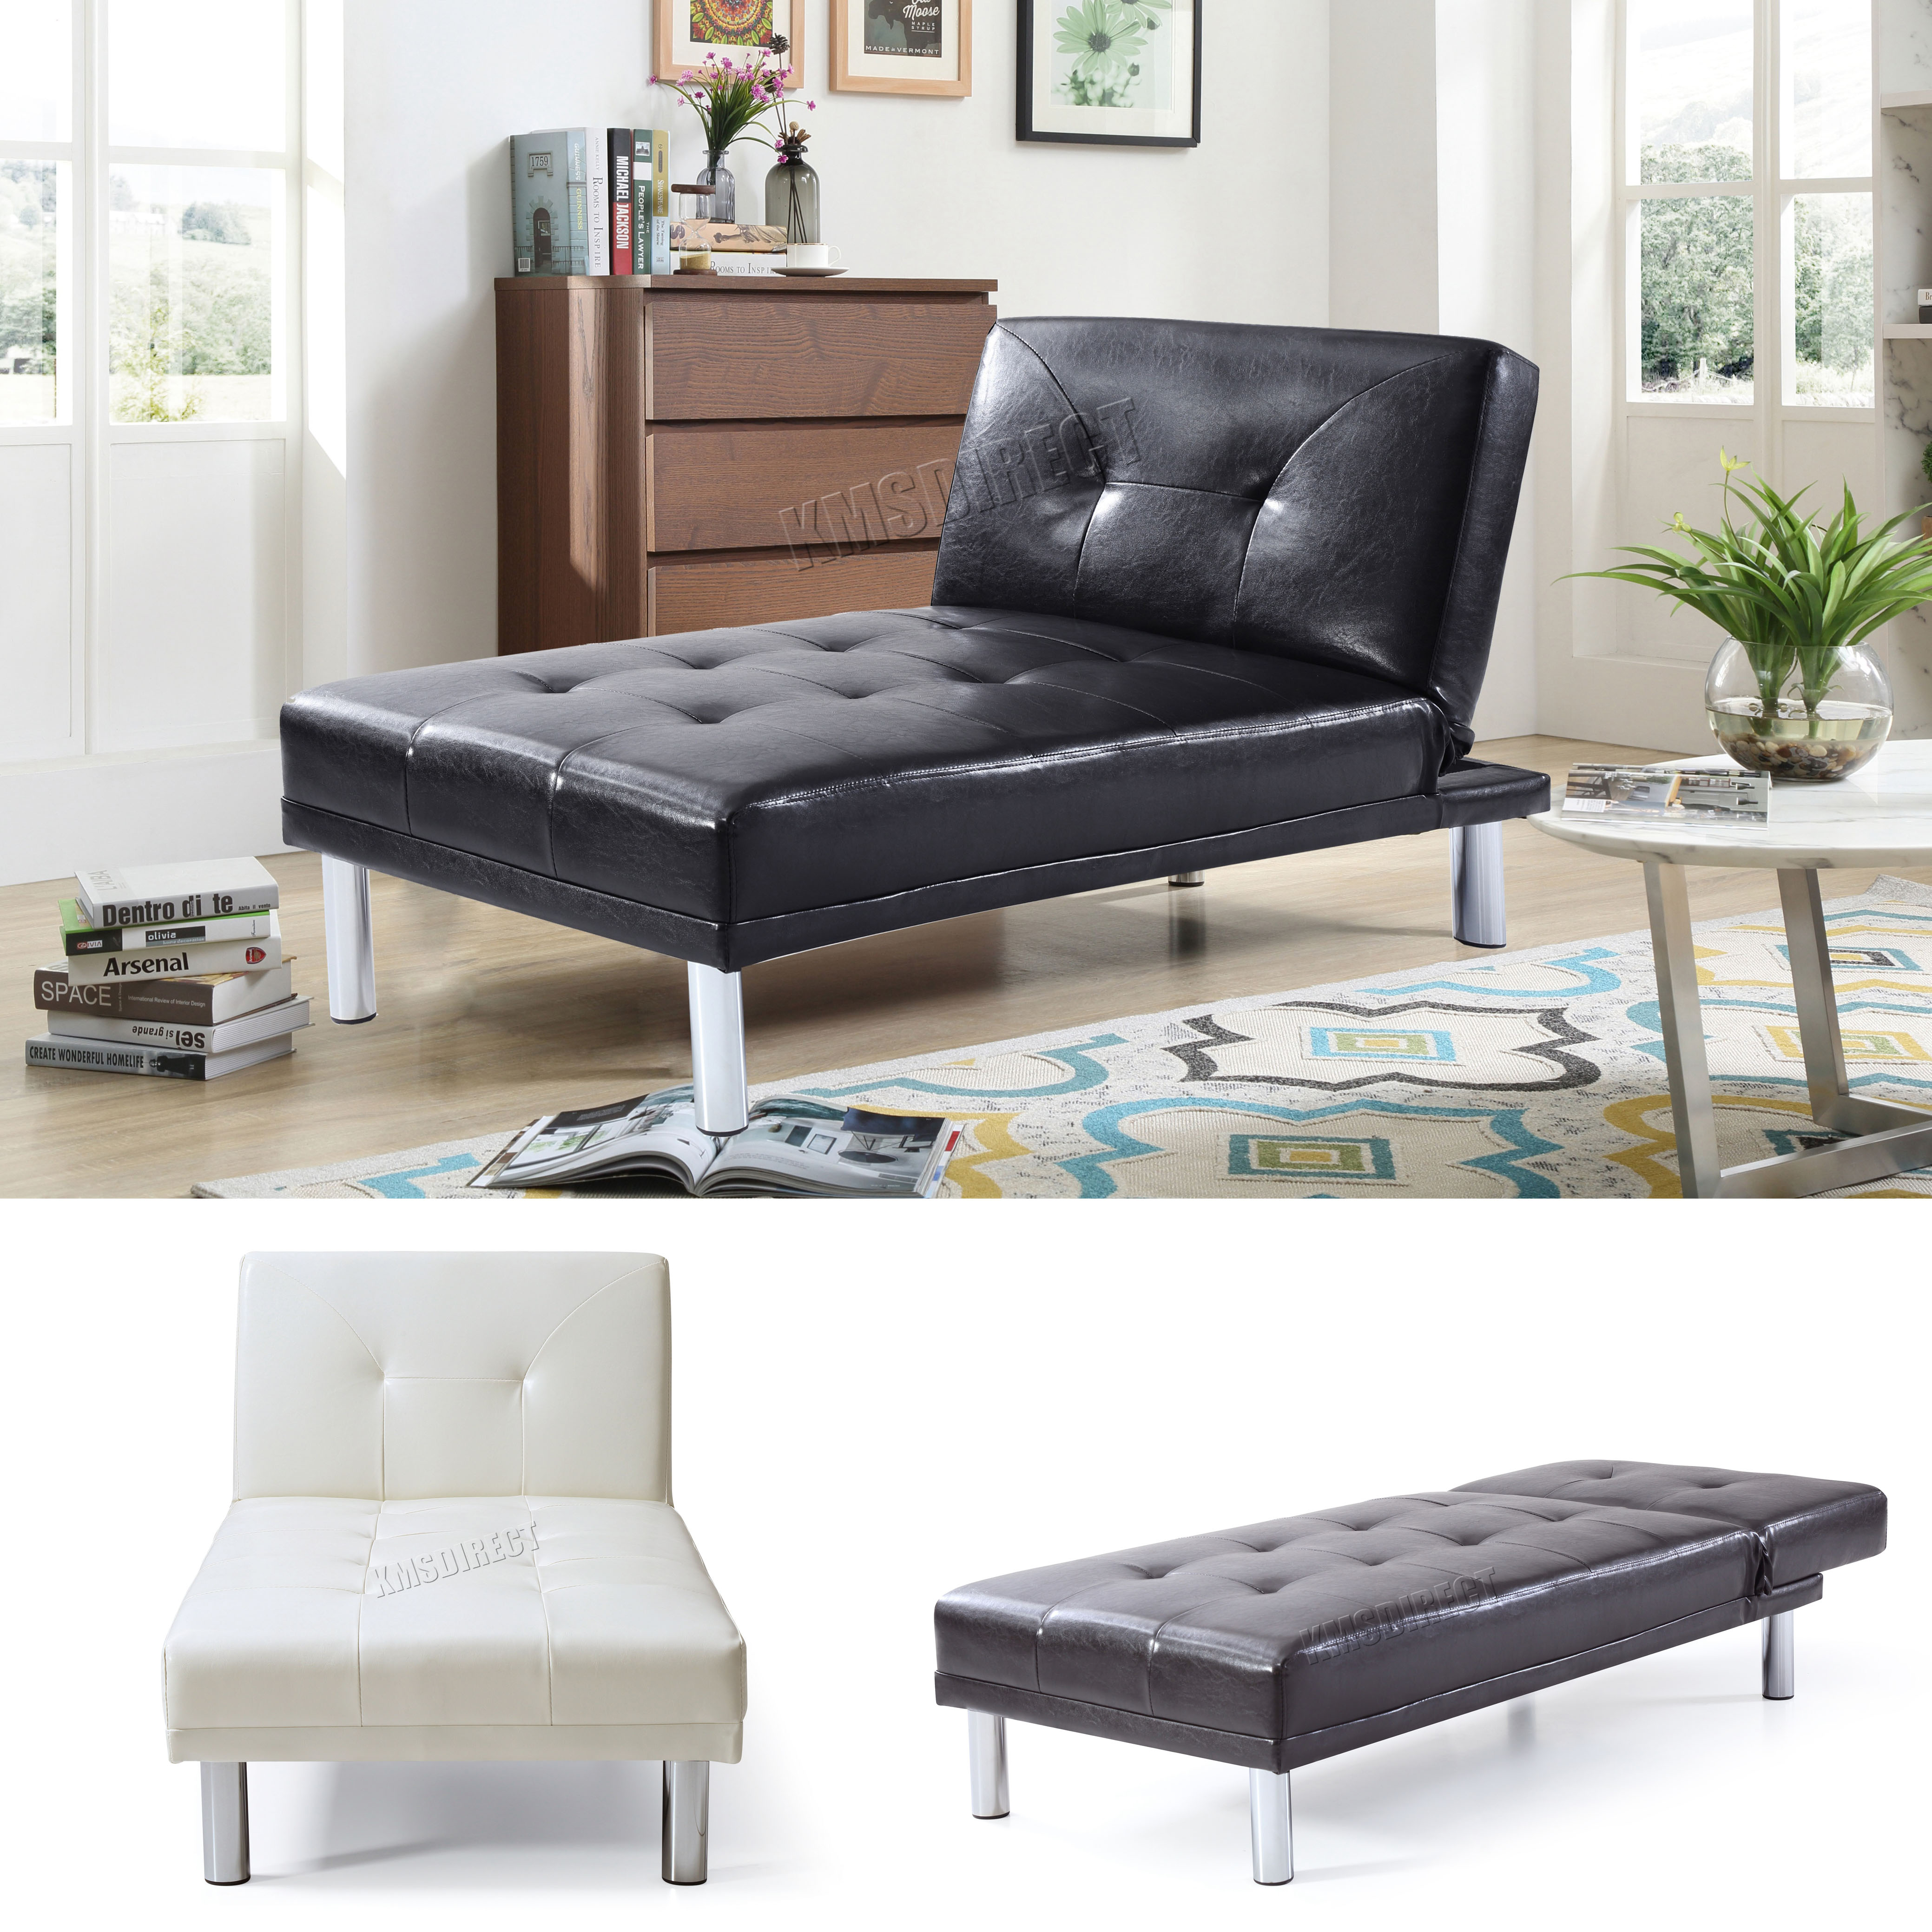 Foxhunter chaise longue single sofa bed 1 seater couch faux leather chair psb03 ebay Single couch bed